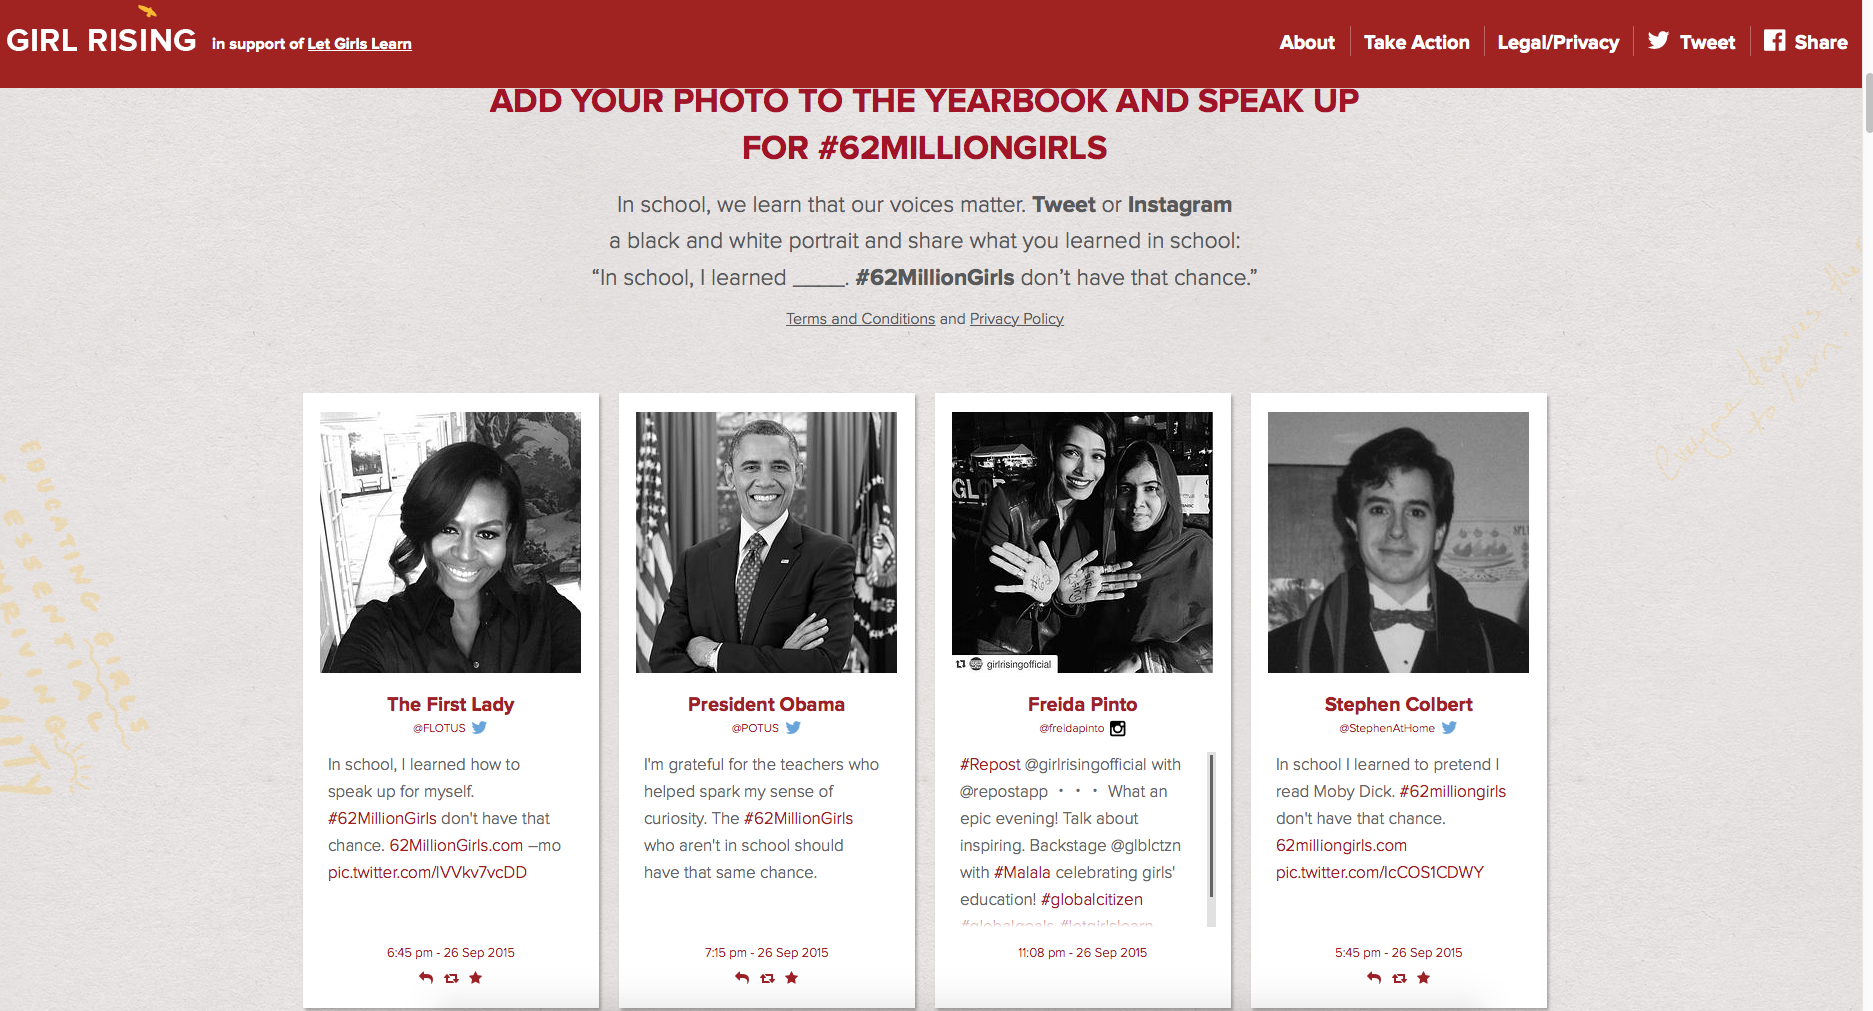 The homepage of 62milliongirls.com, showcasing an extensive 'yearbook' of supporters.